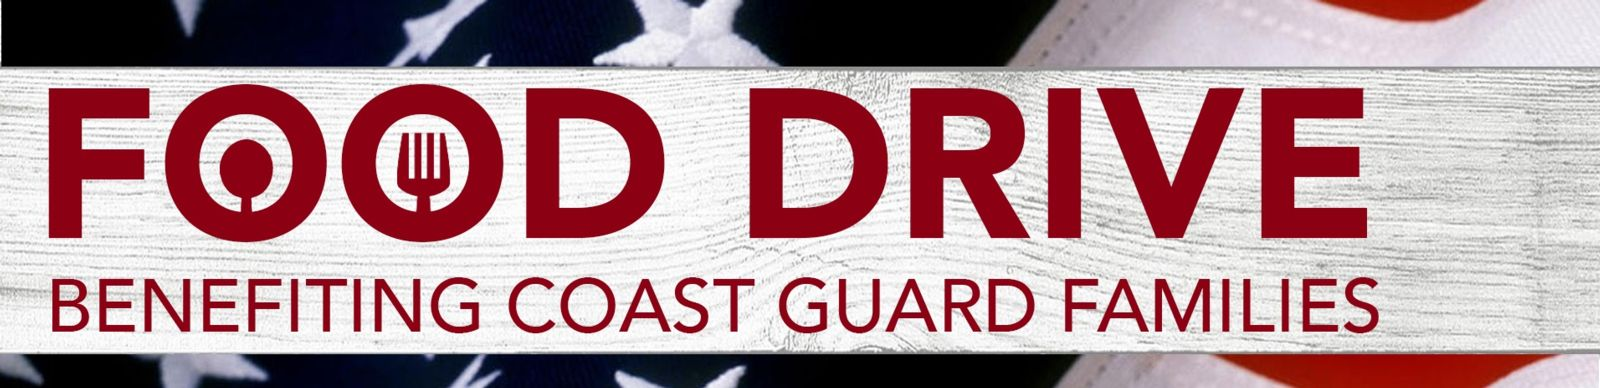 coast guard food drive